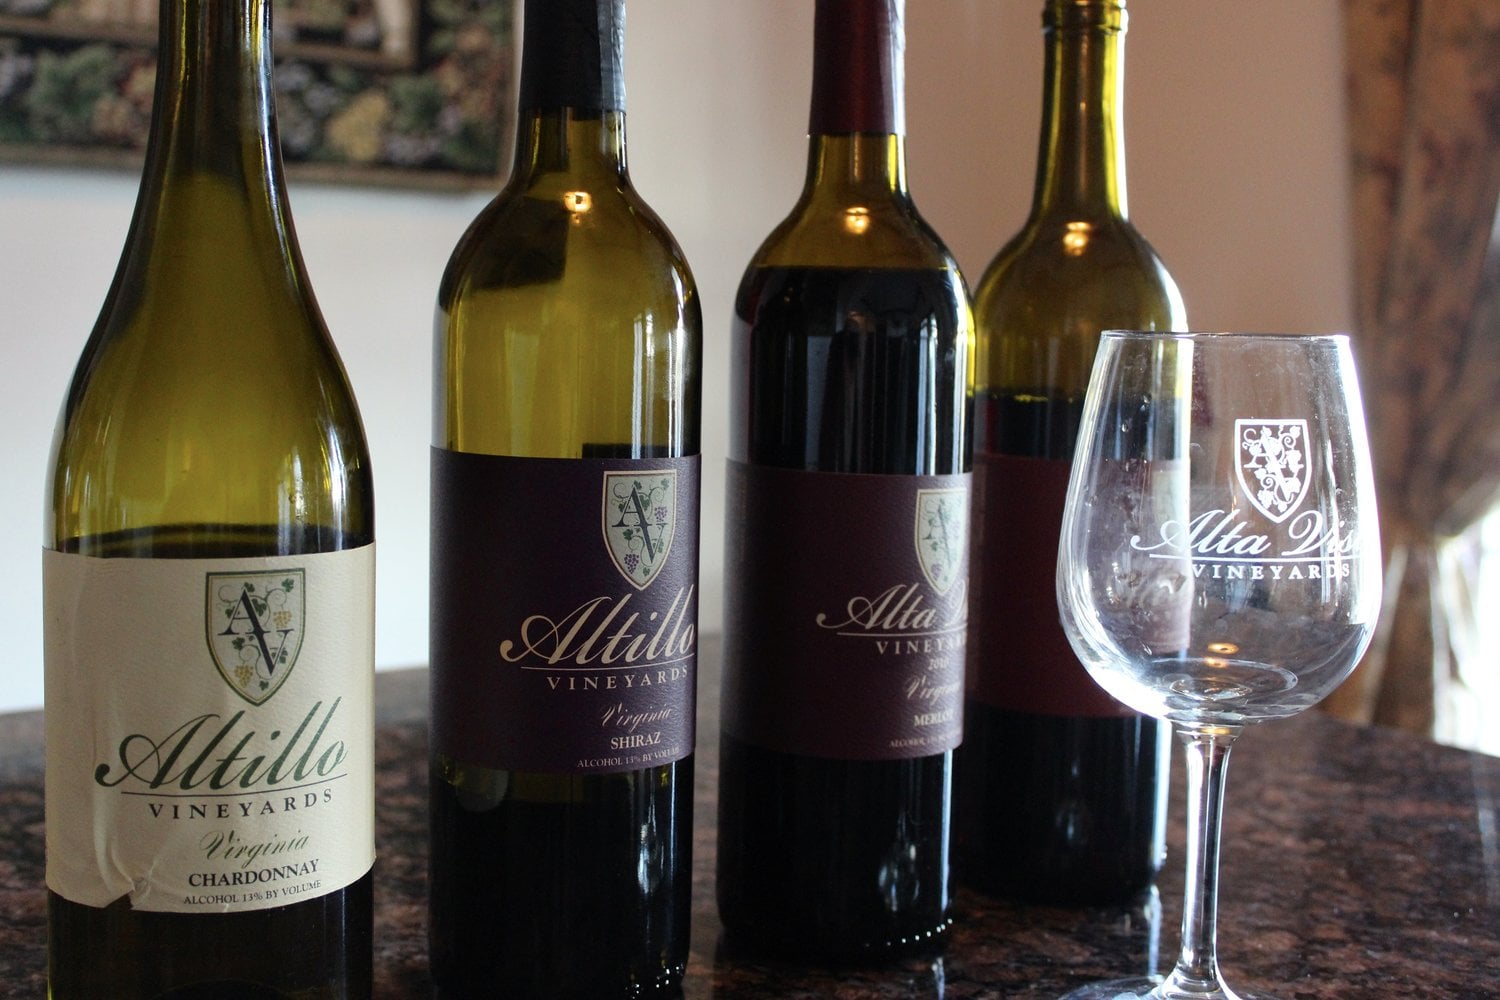 vineyards 4 bottles and a glass of wine from the vineyard for tastings altillo vineyards hurt virginia united states ulocal local products local purchase local produce locavore tourist